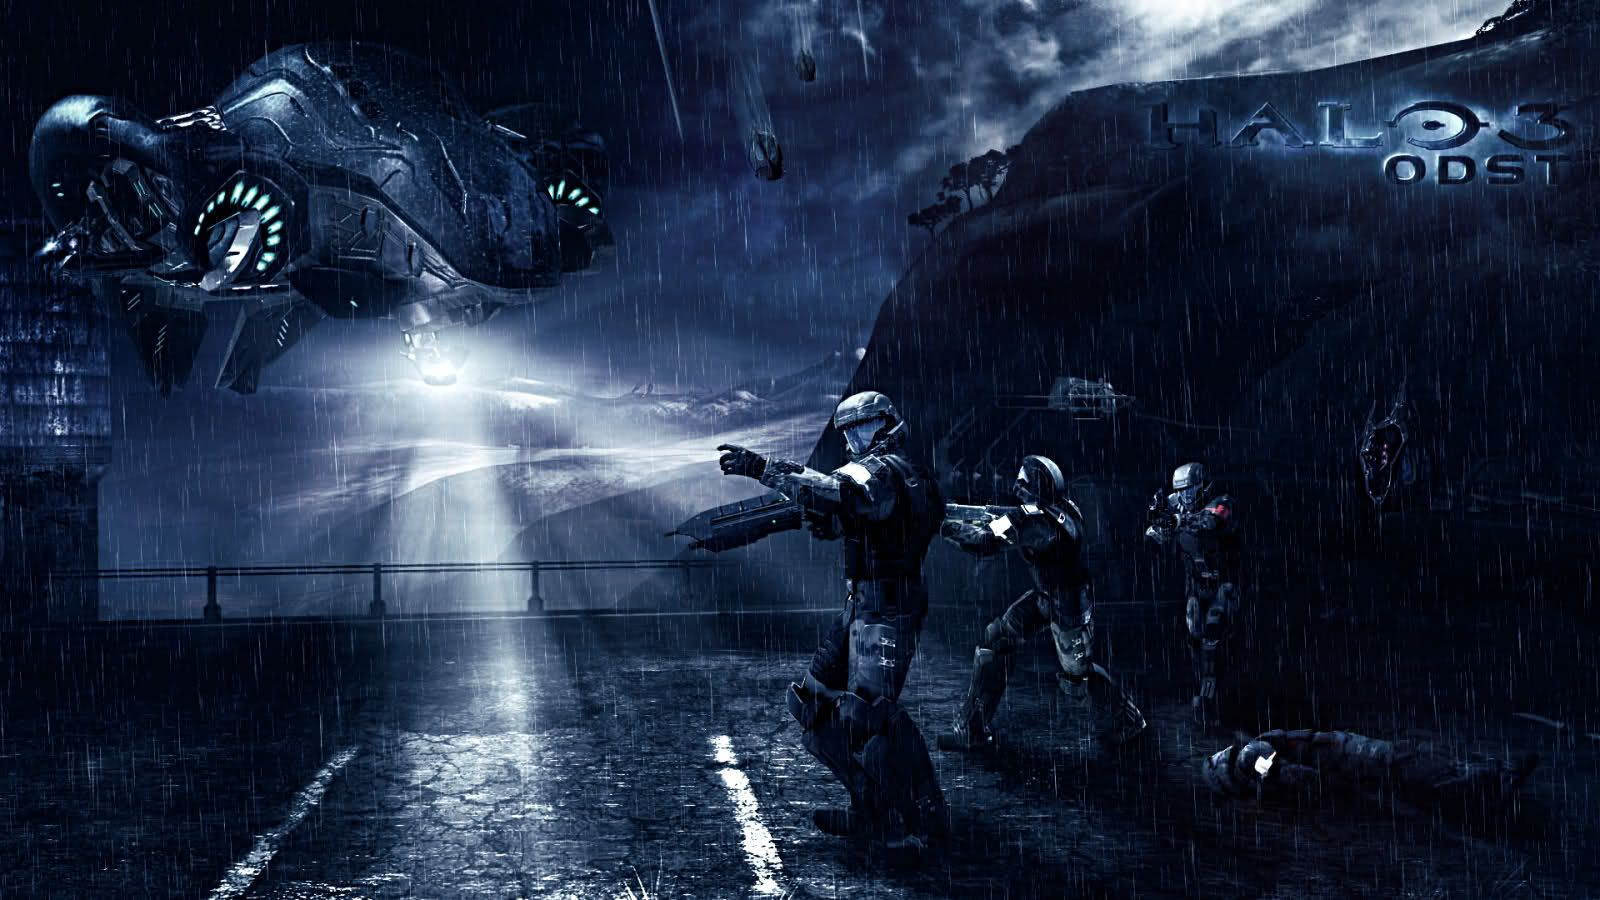 9 Halo 3 Odst Hd Wallpapers Backgrounds Wallpaper Abyss